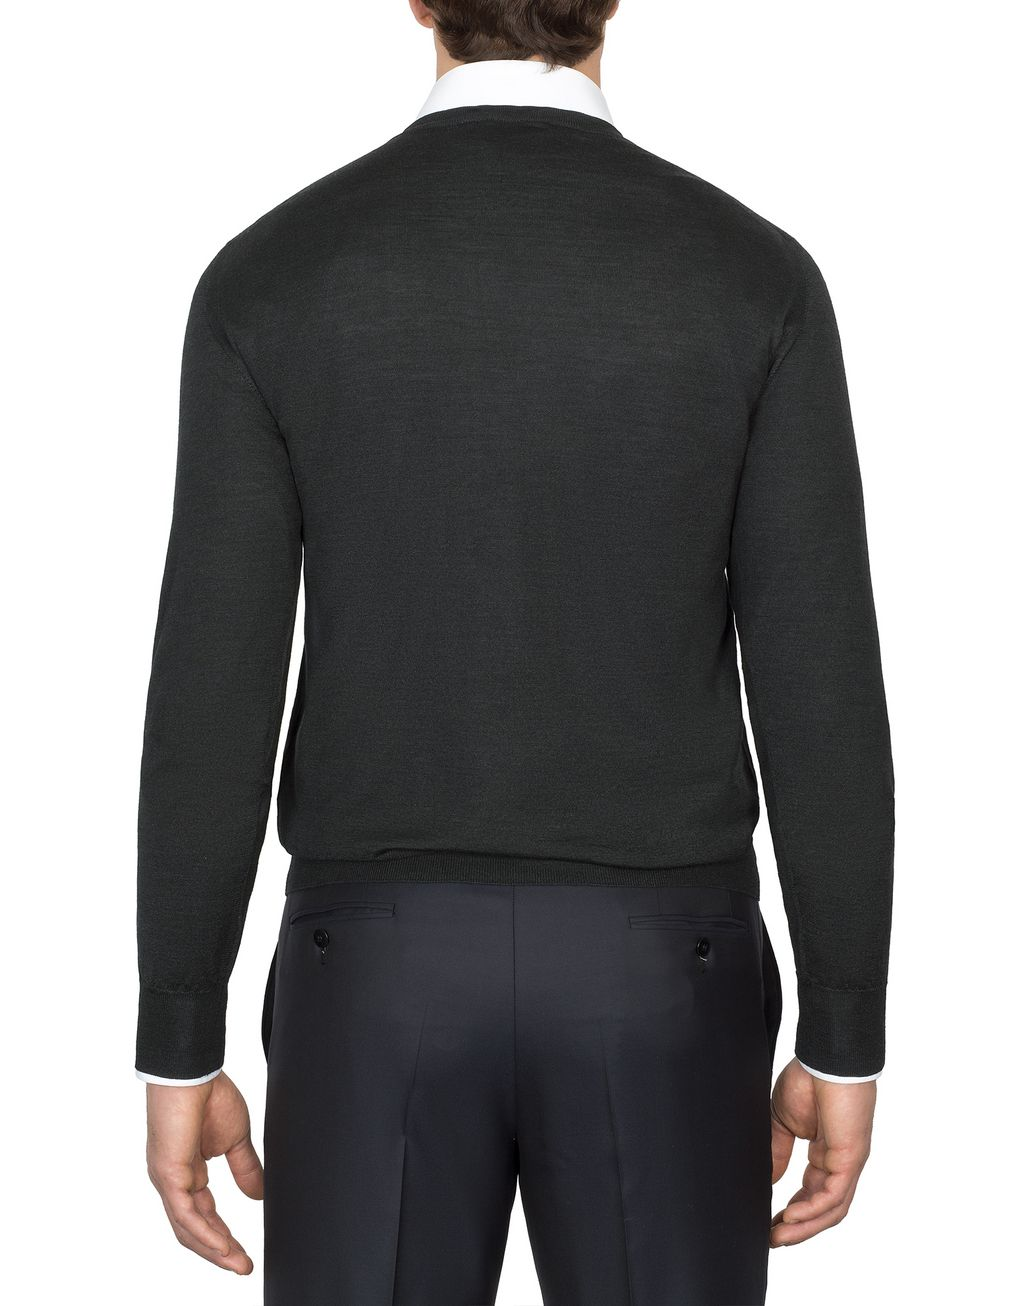 BRIONI 'Essential' Grey V-Neck Sweater Knitwear Man d